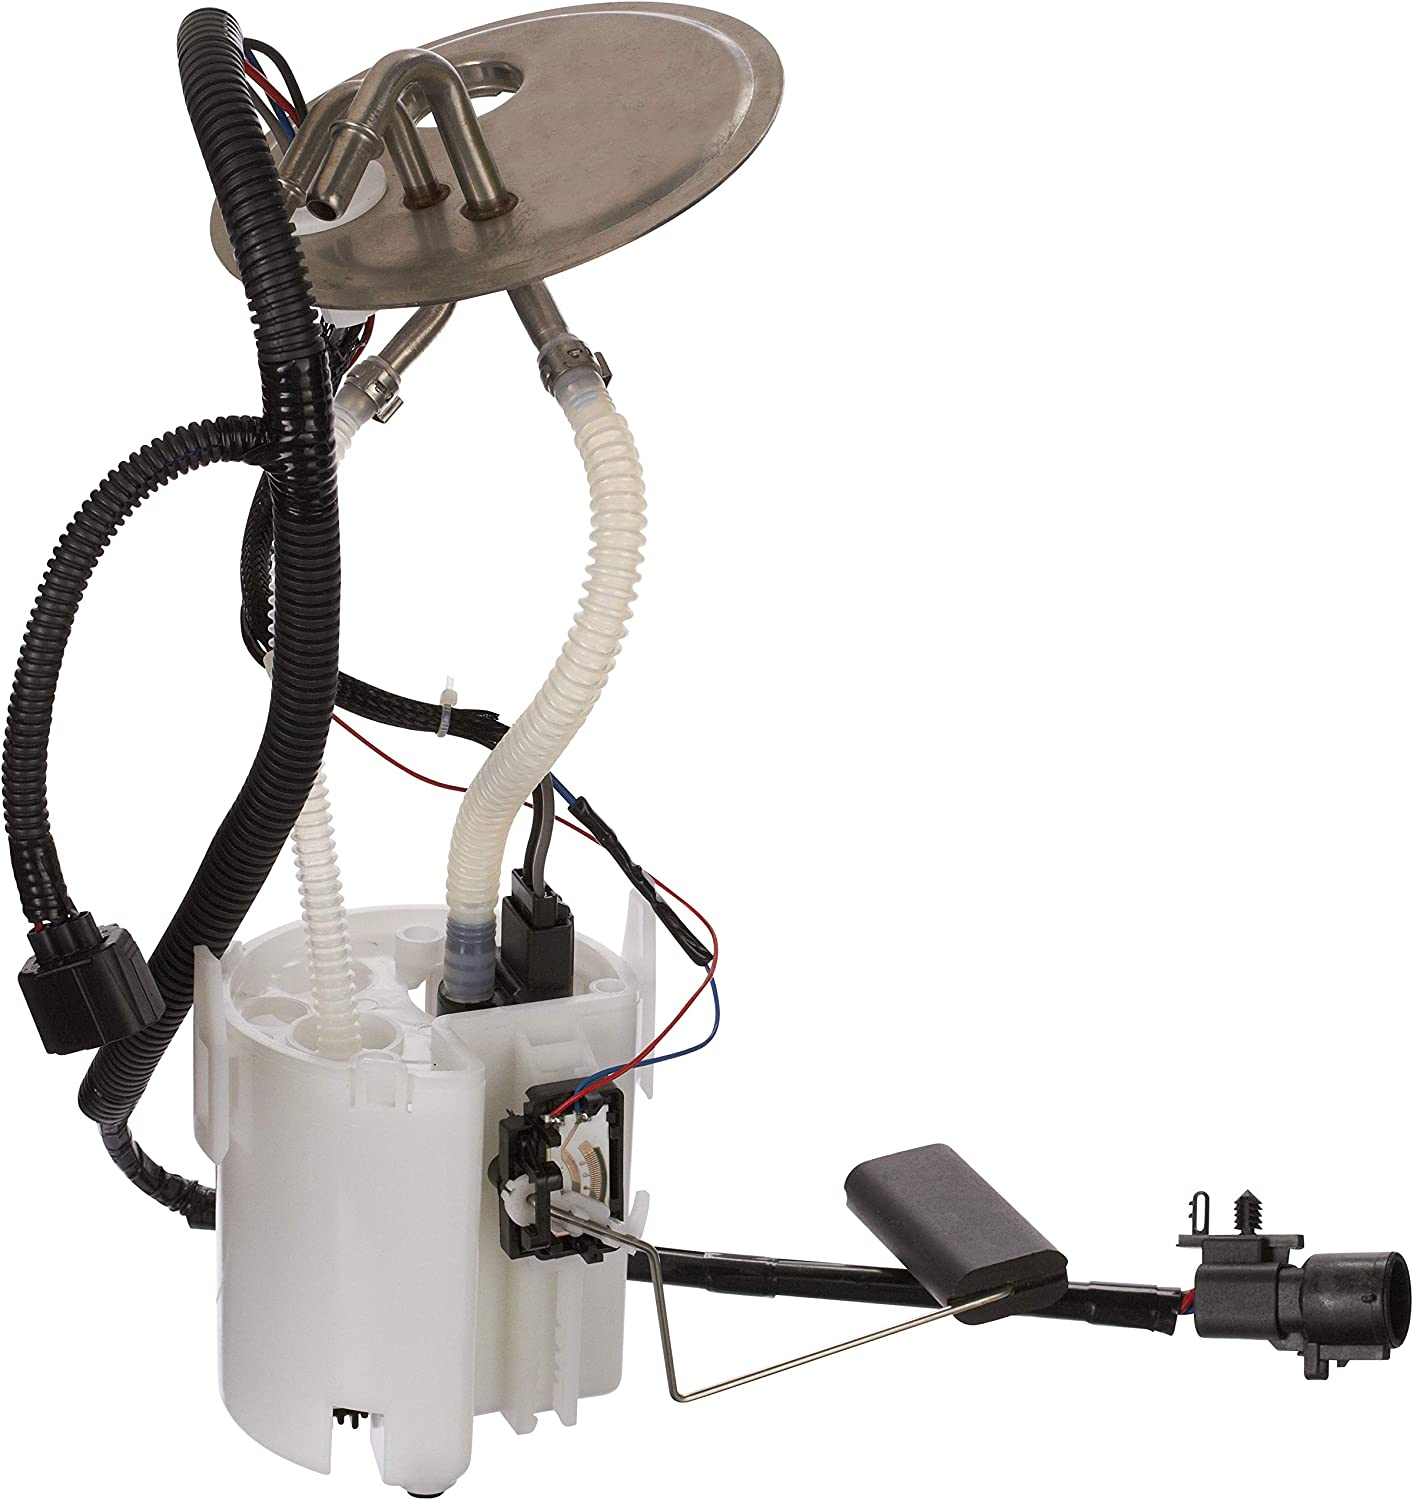 Limited time sale Spectra Fuel Pump Clearance SALE! Limited time! Assembly Module SP2036M